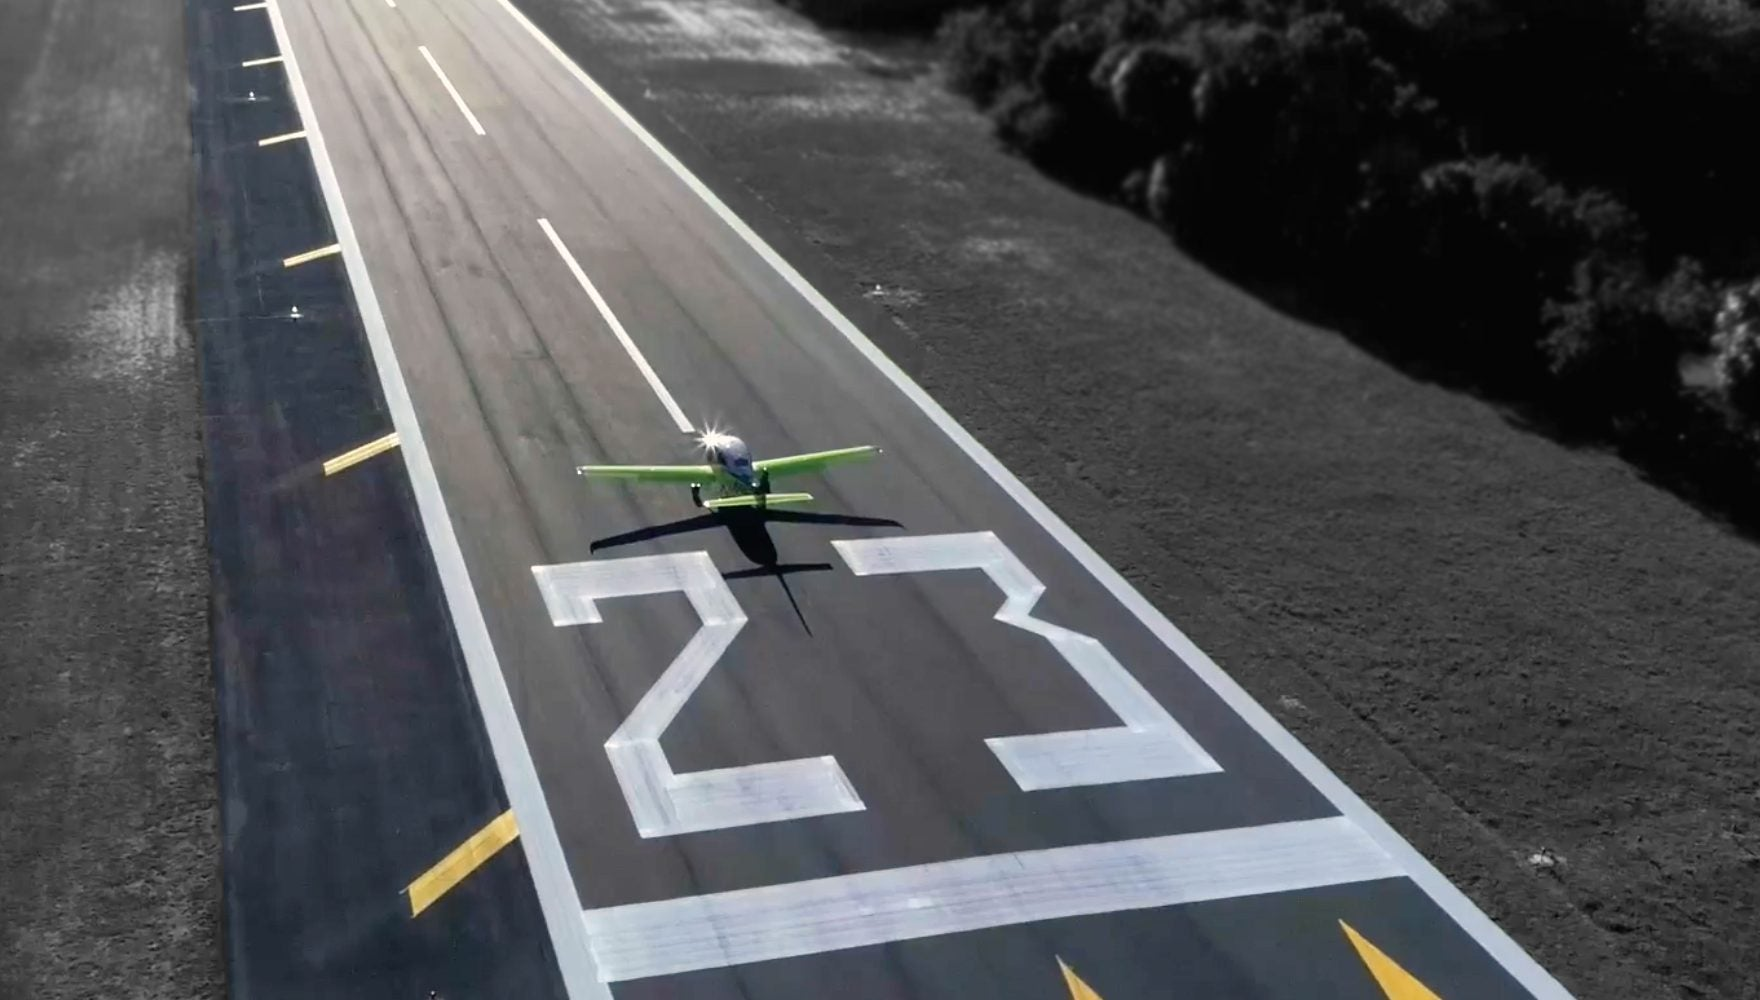 Cirrus Aircraft Encourages Pilots to Master Takeoffs and Landings with Complimentary Course